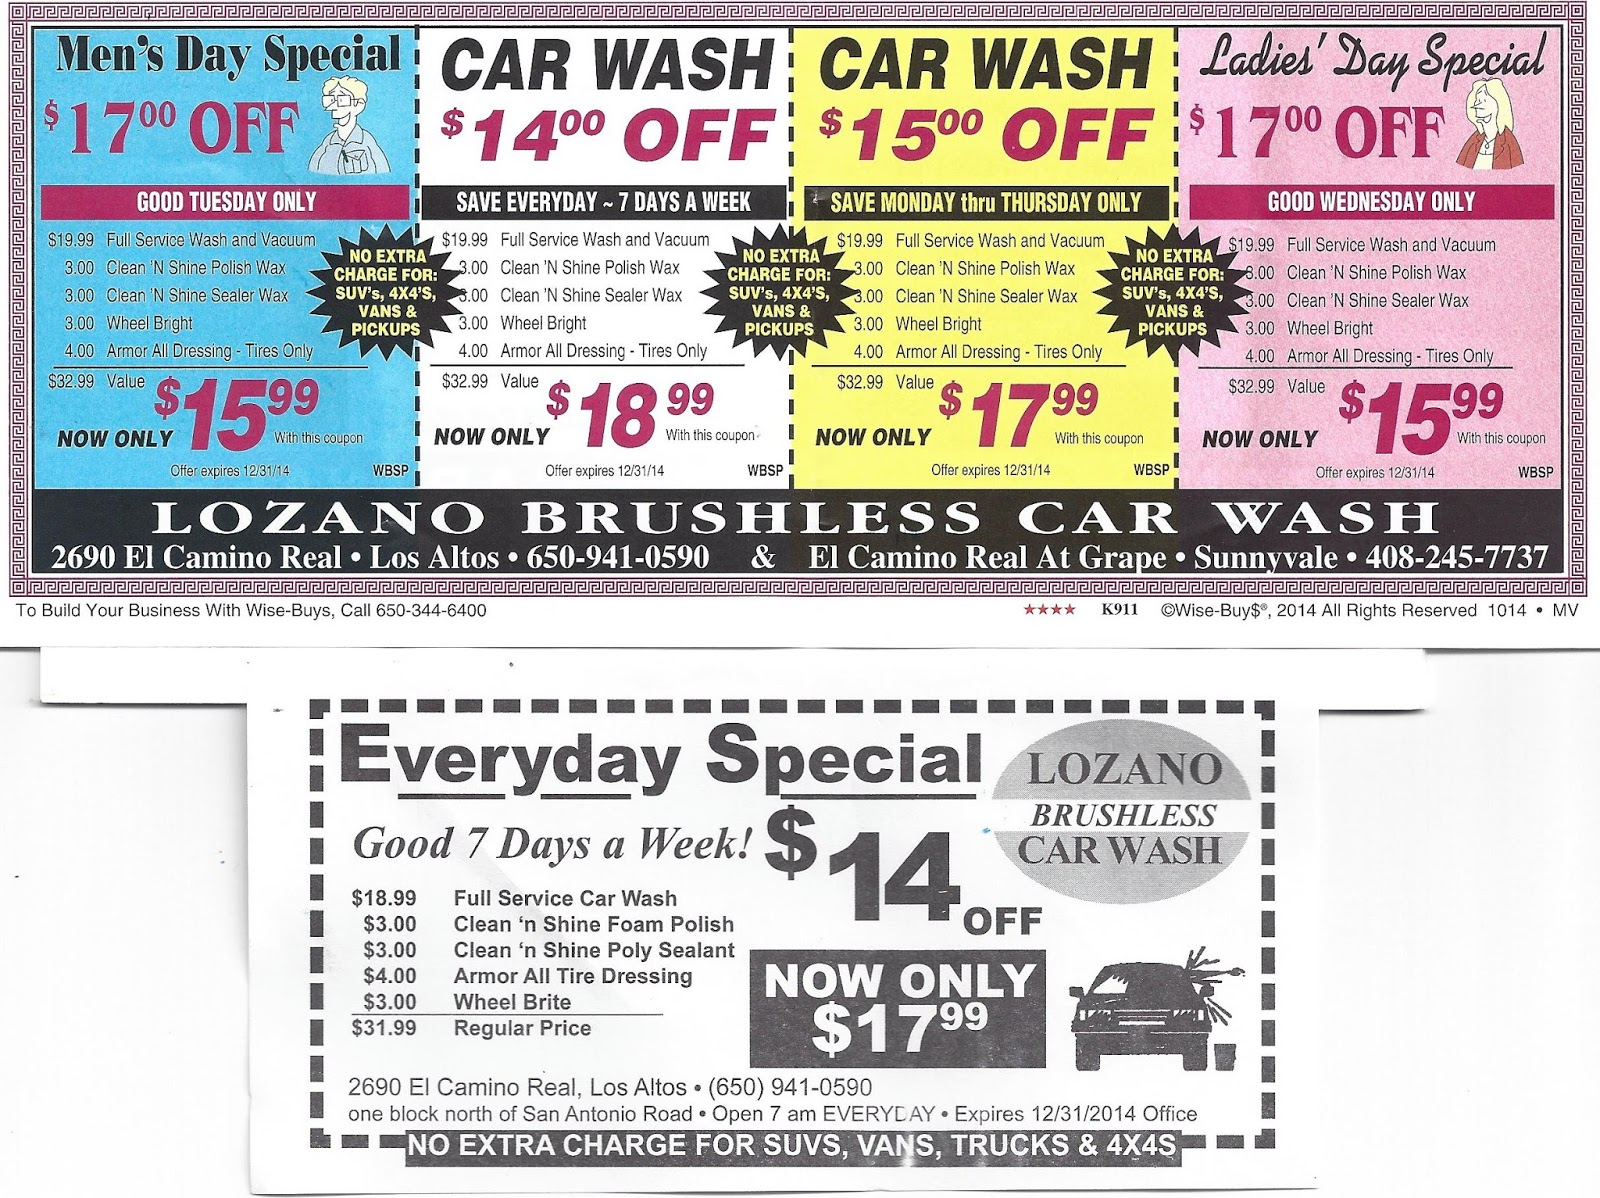 Car Wash Prices: Kirk's Market Thoughts: Inflation In Lozano's Car Wash